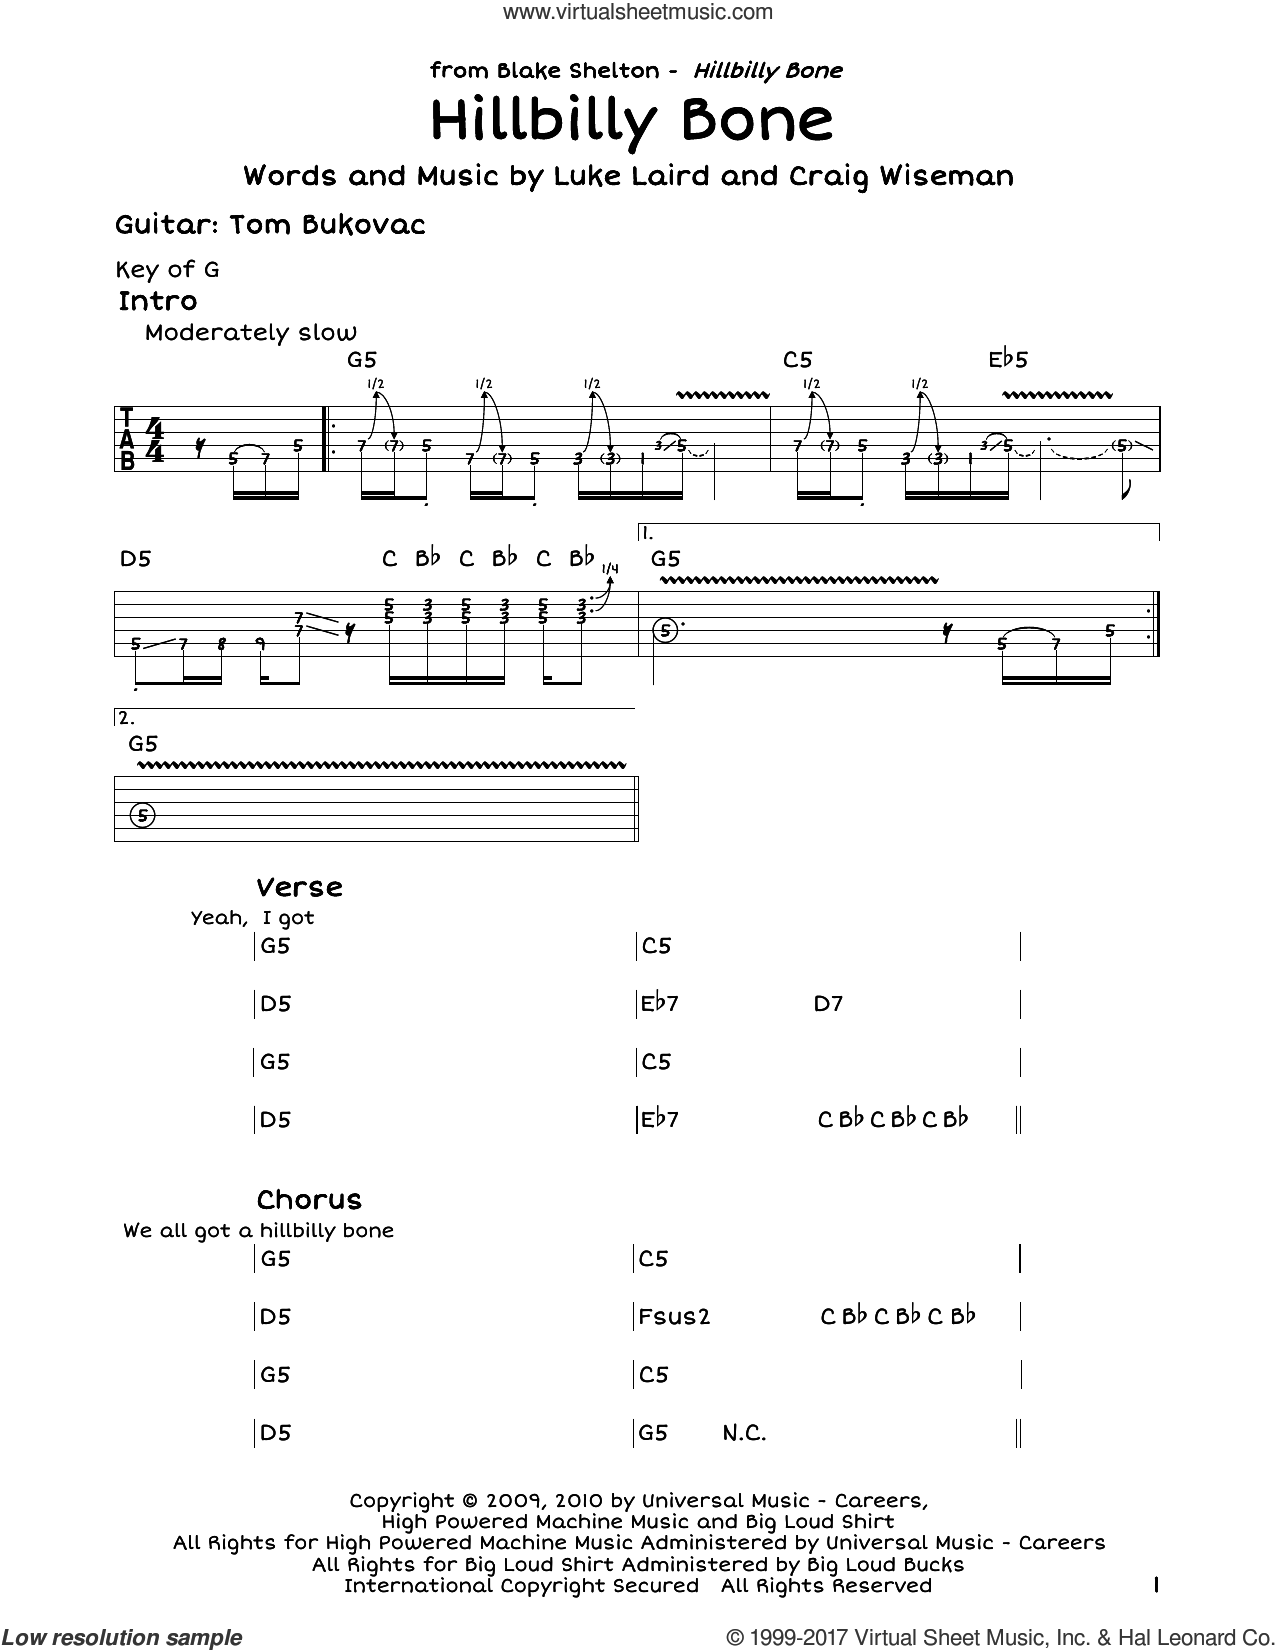 Hillbilly Bone sheet music for guitar solo (lead sheet) by Blake Shelton featuring Trace Adkins, Craig Wiseman and Luke Laird, intermediate guitar (lead sheet)